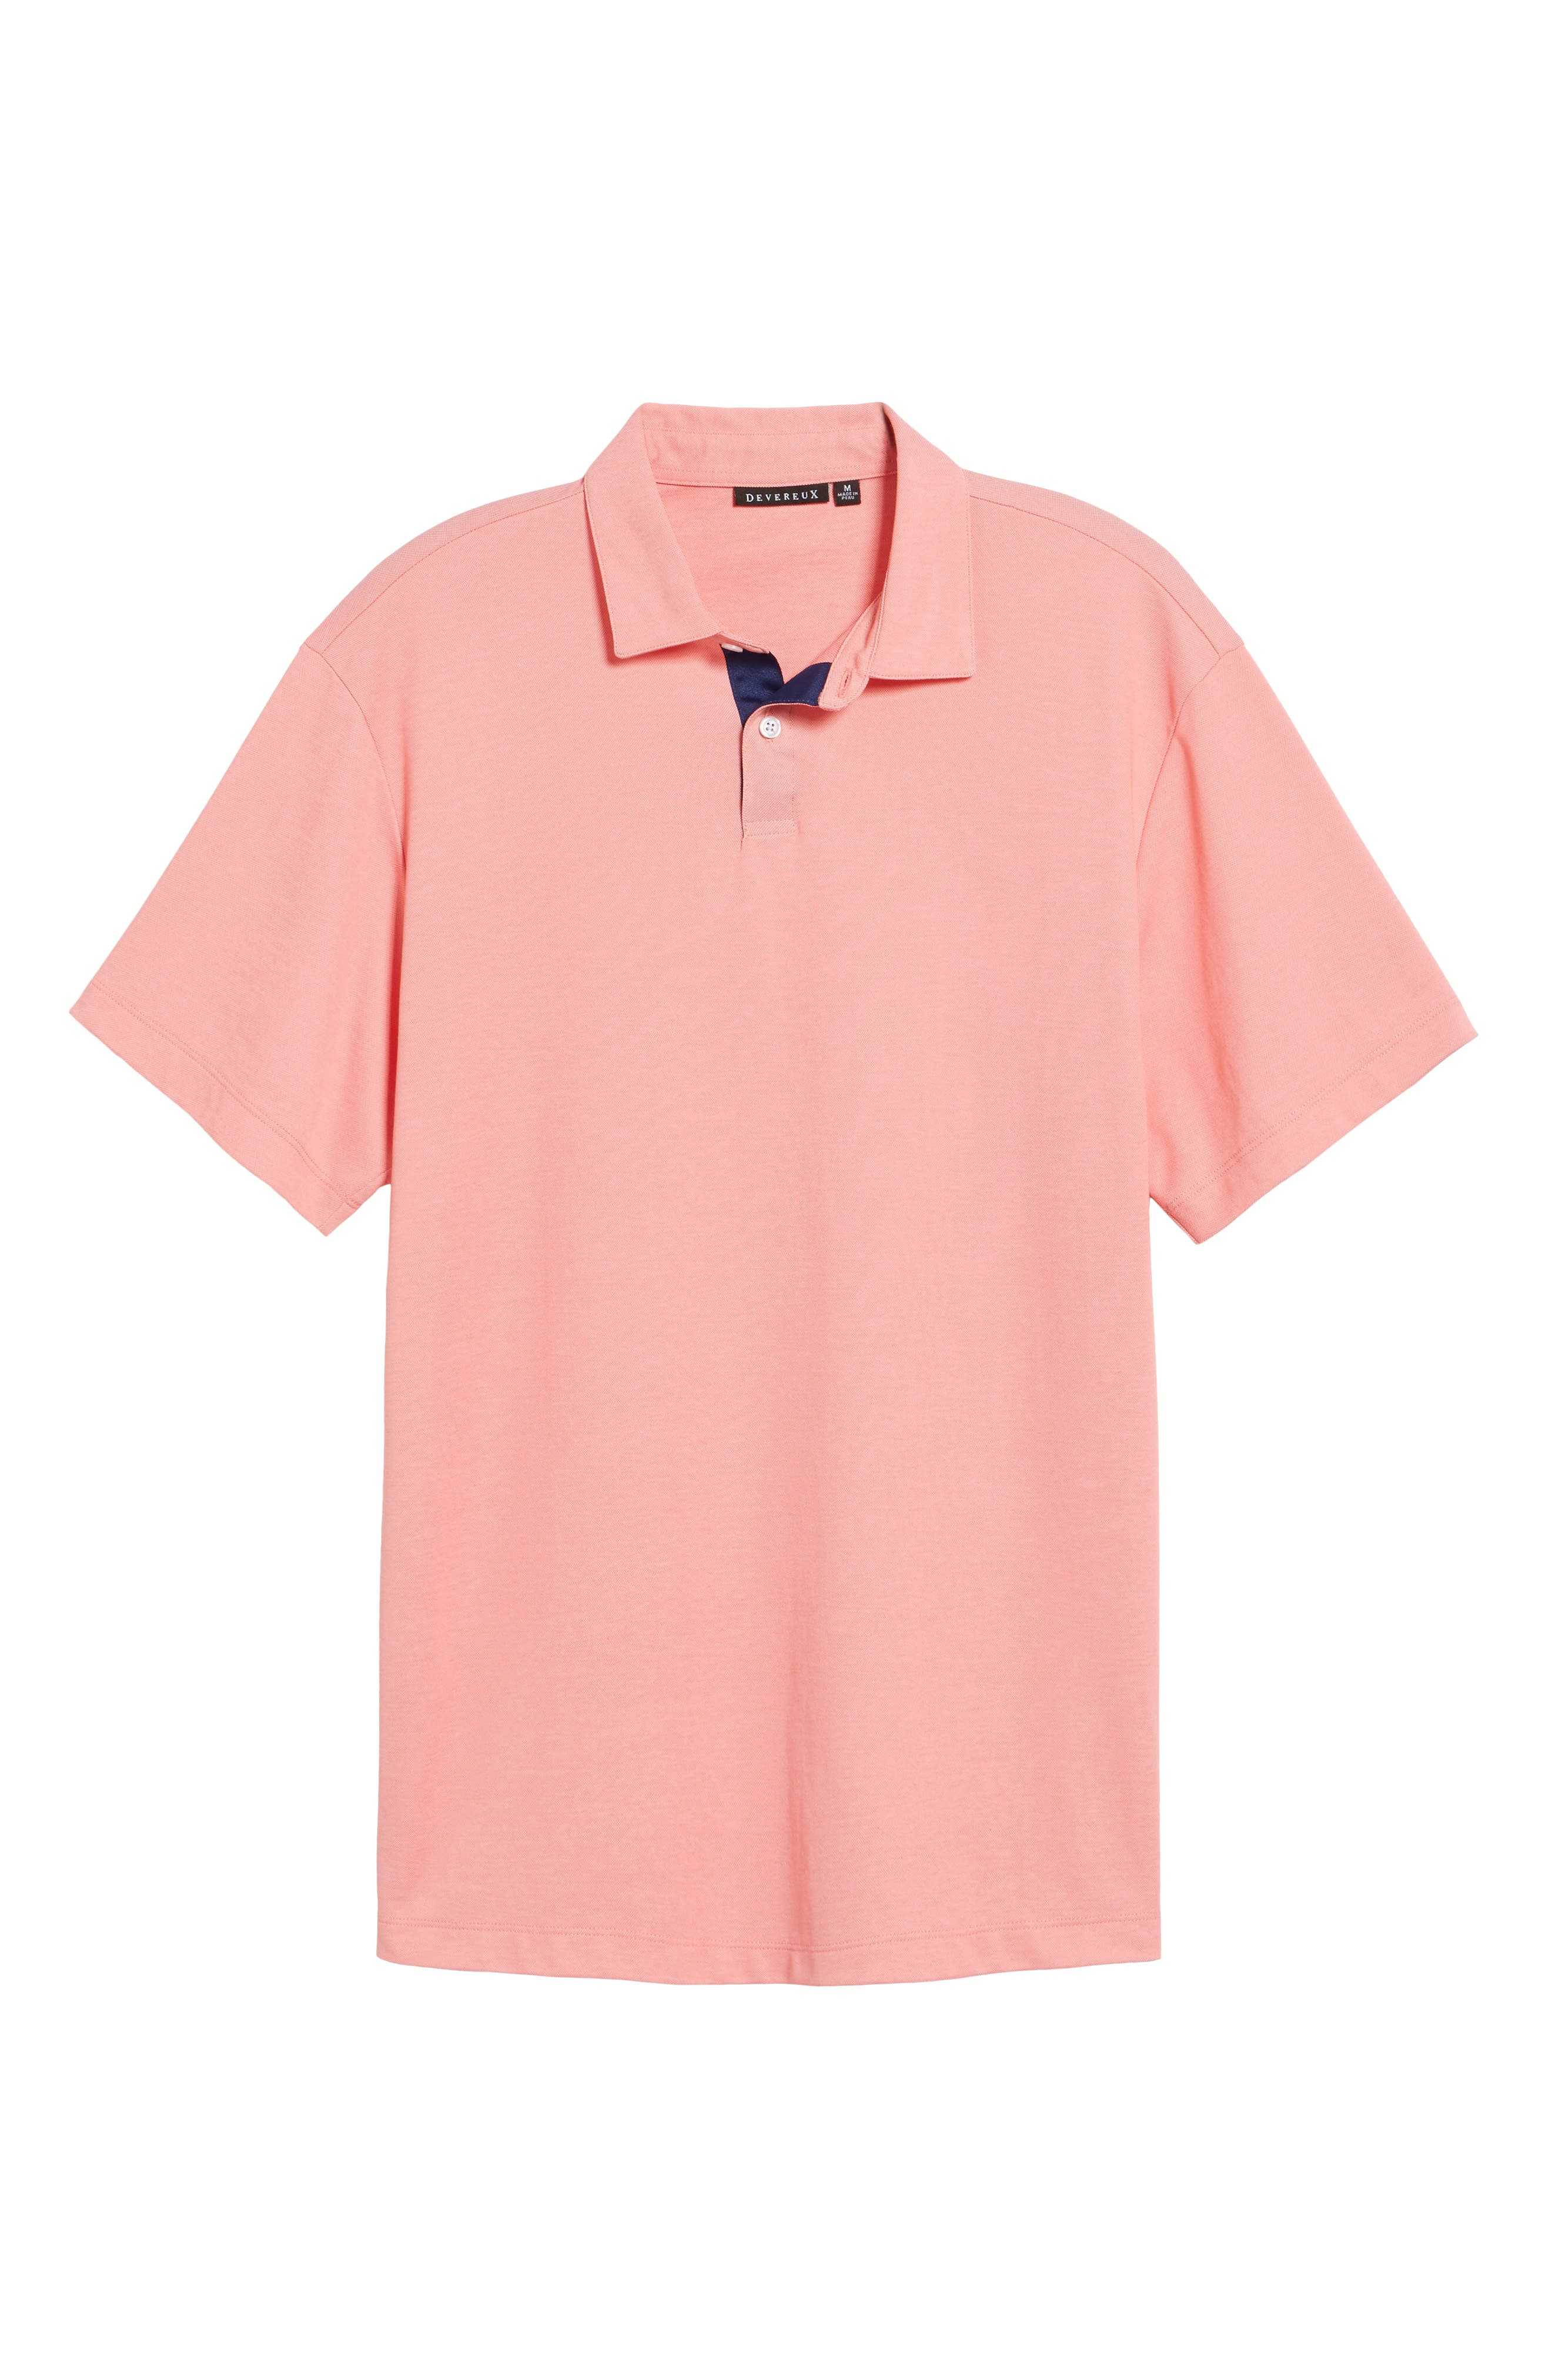 Andrew Regular Fit Piqué Polo,                             Alternate thumbnail 6, color,                             Coral